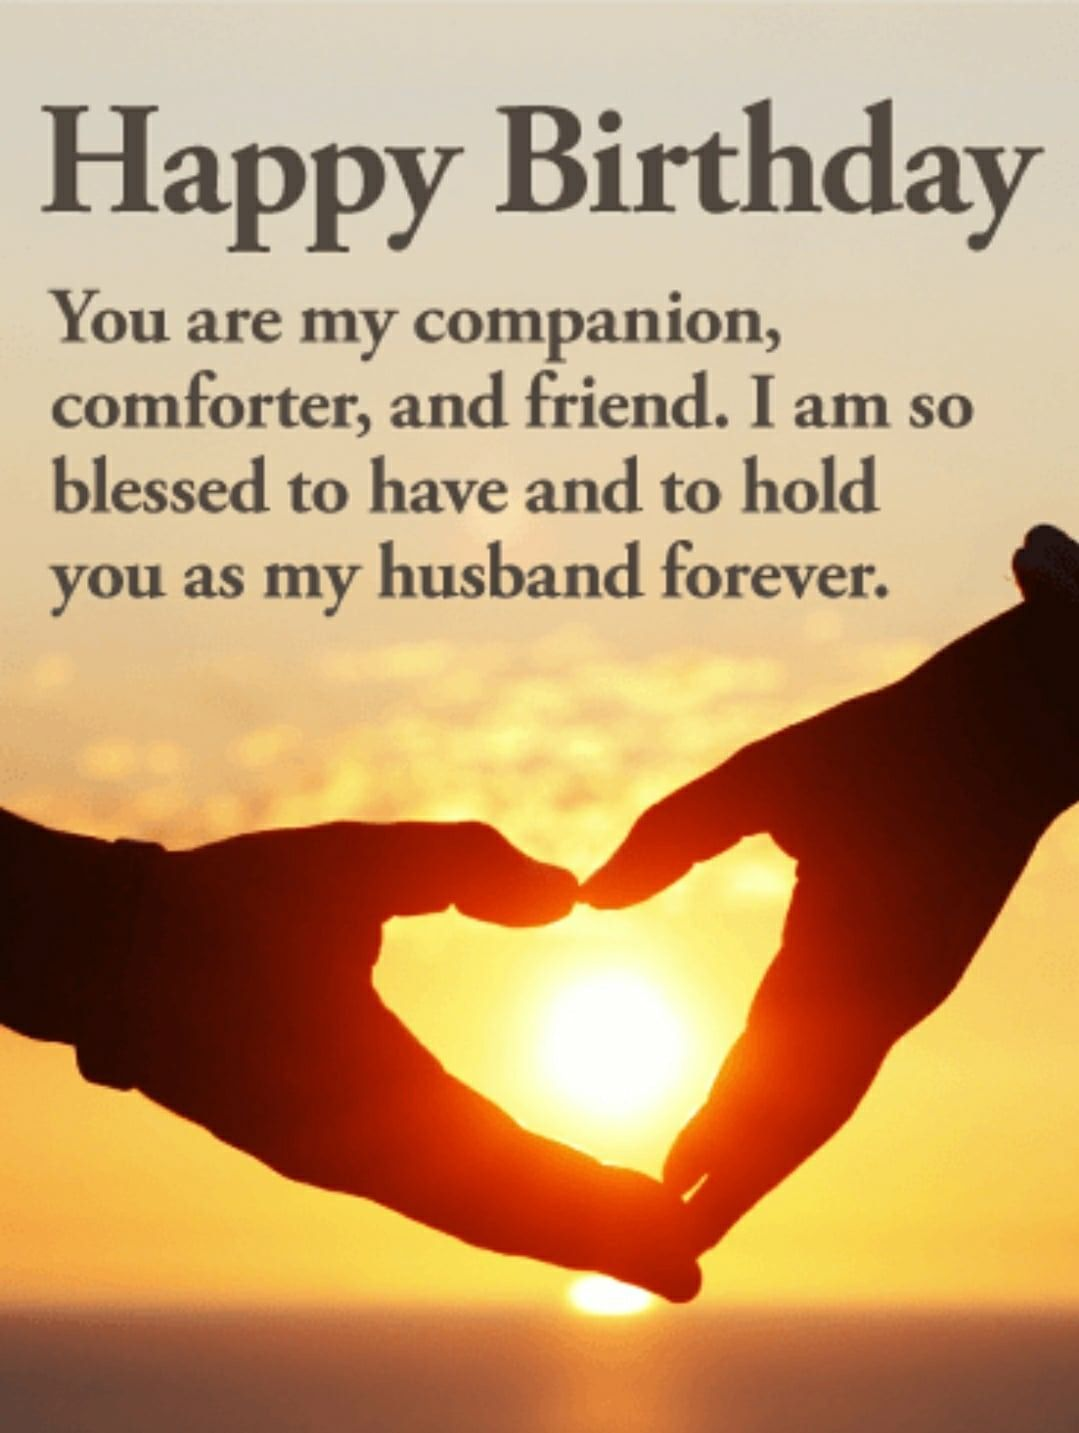 Romantic Birthday Wishes Pictures For Lover Birthday Wishes For